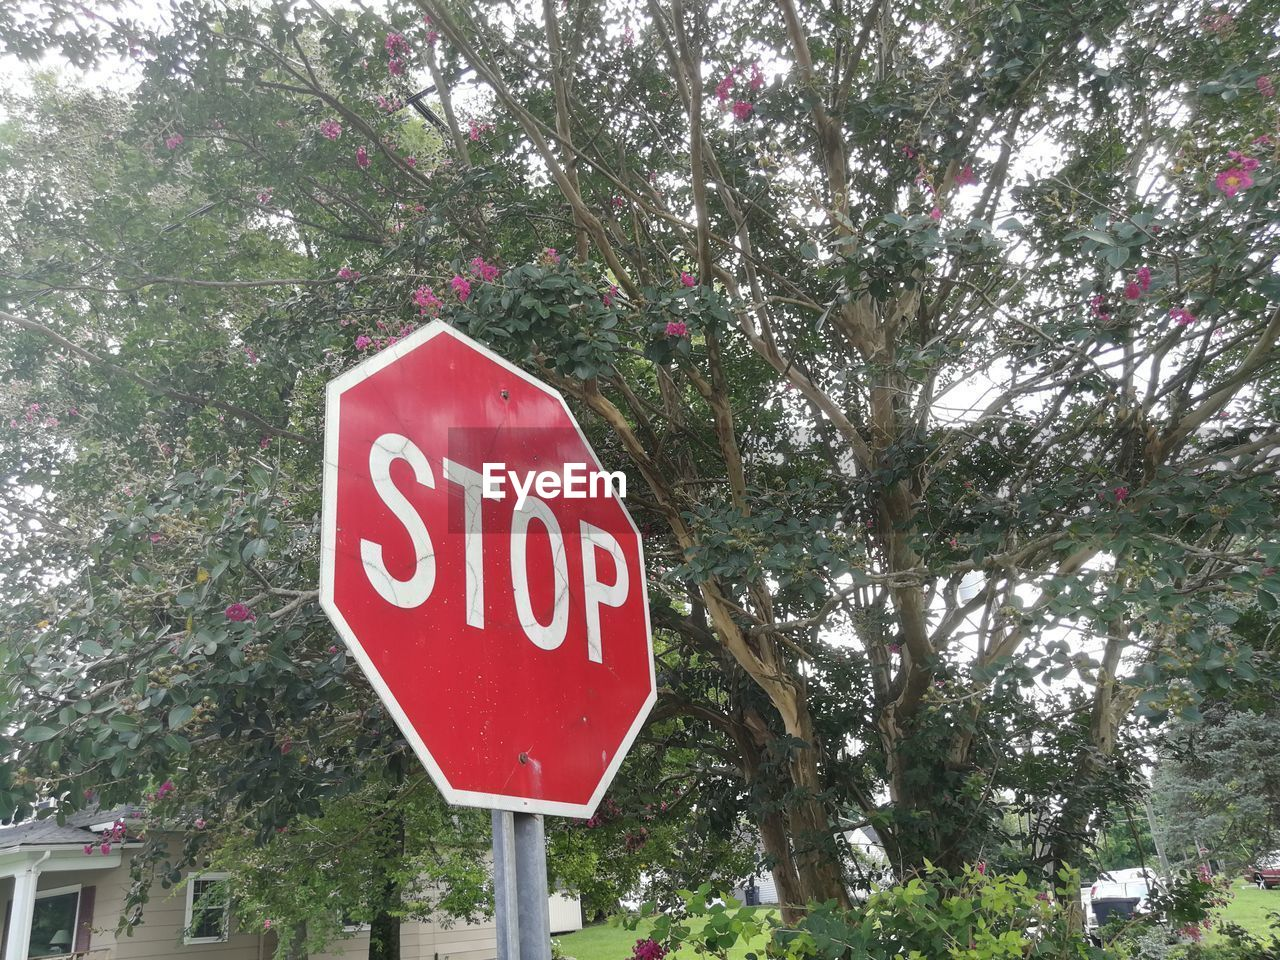 tree, plant, communication, sign, text, stop sign, road sign, western script, day, red, nature, road, capital letter, warning sign, information, growth, guidance, no people, stop - single word, city, outdoors, message